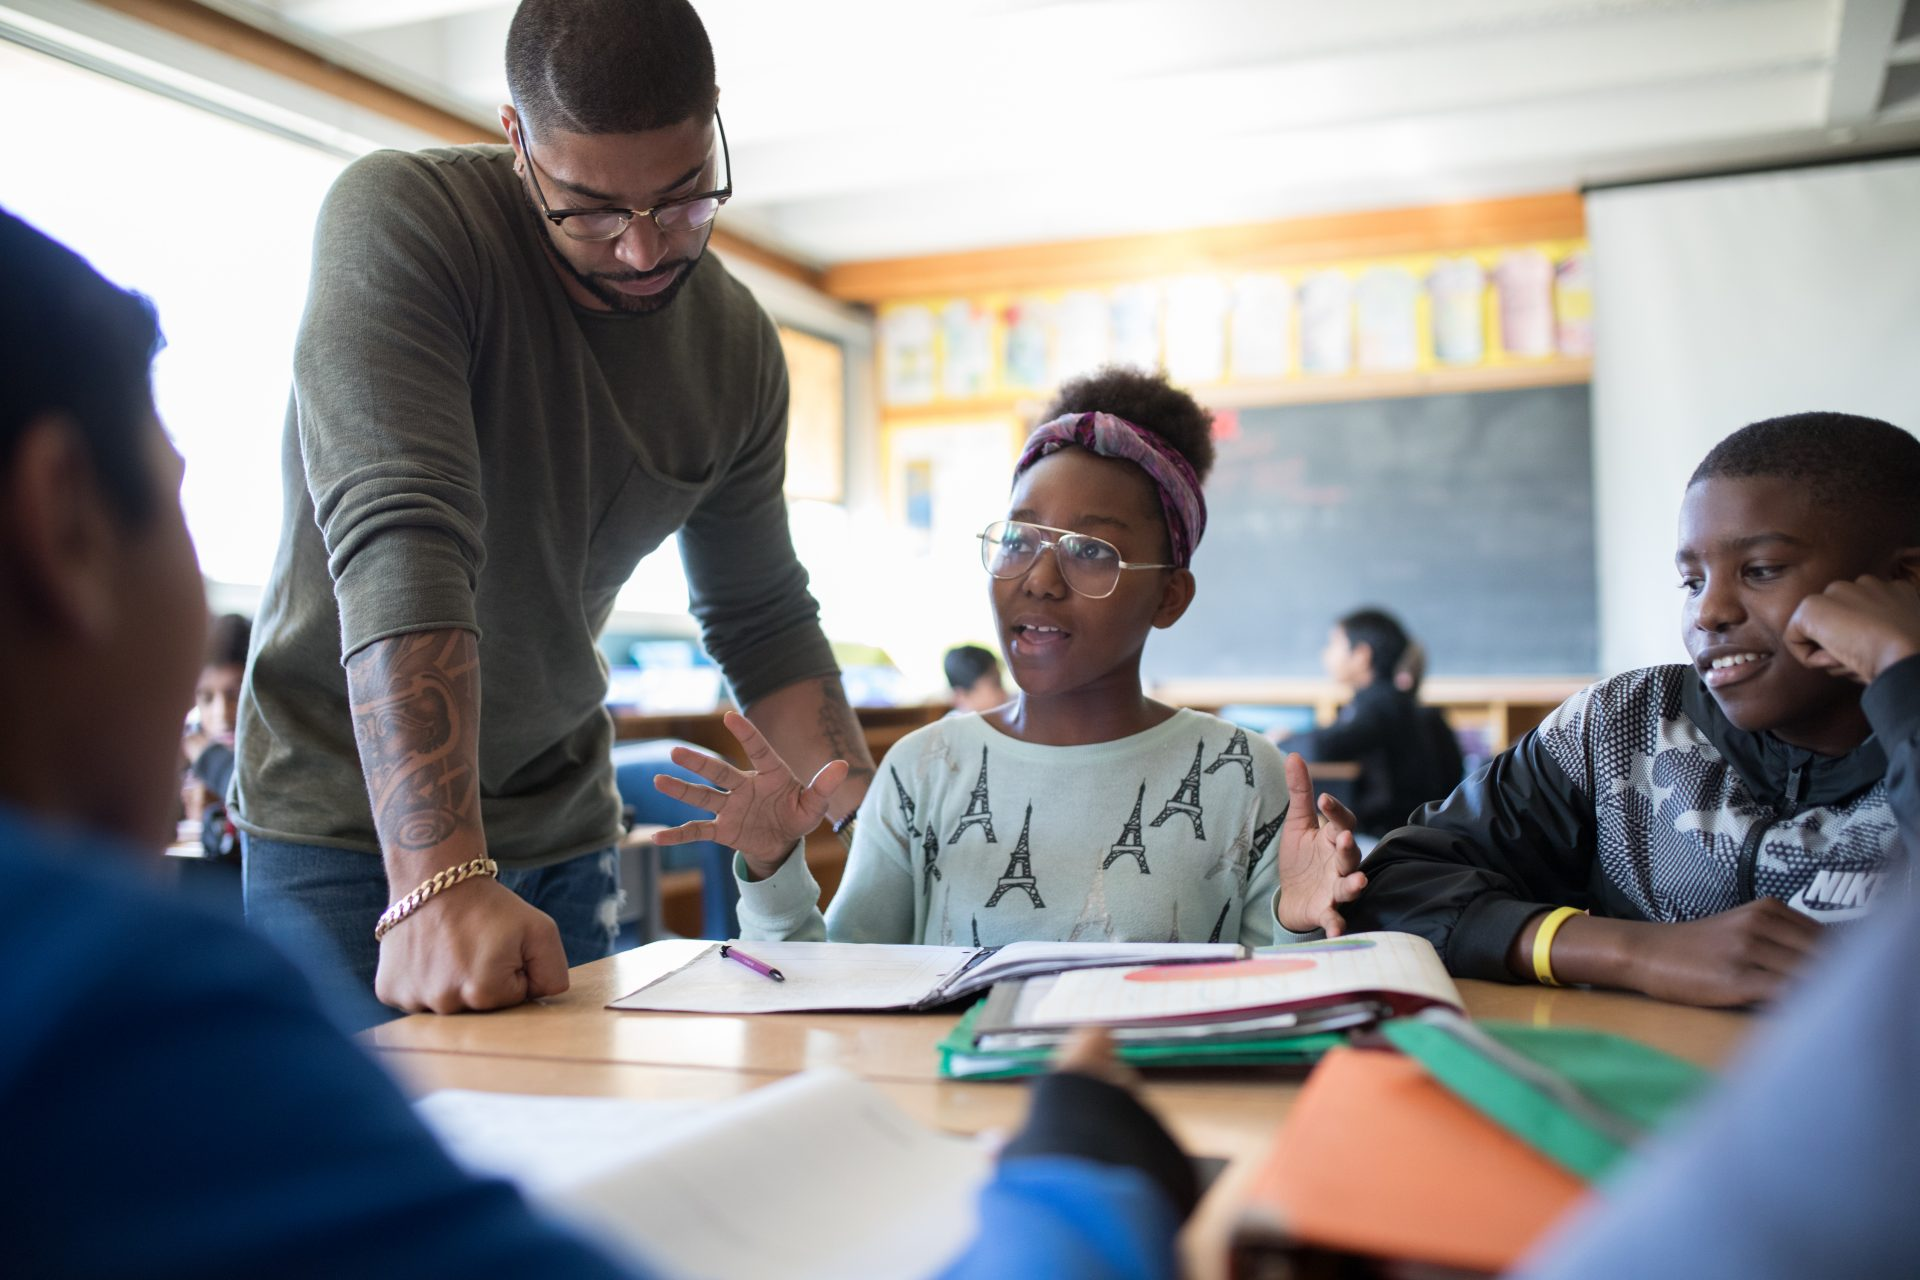 Teaching and Learning While Black - Matthew R. Morris